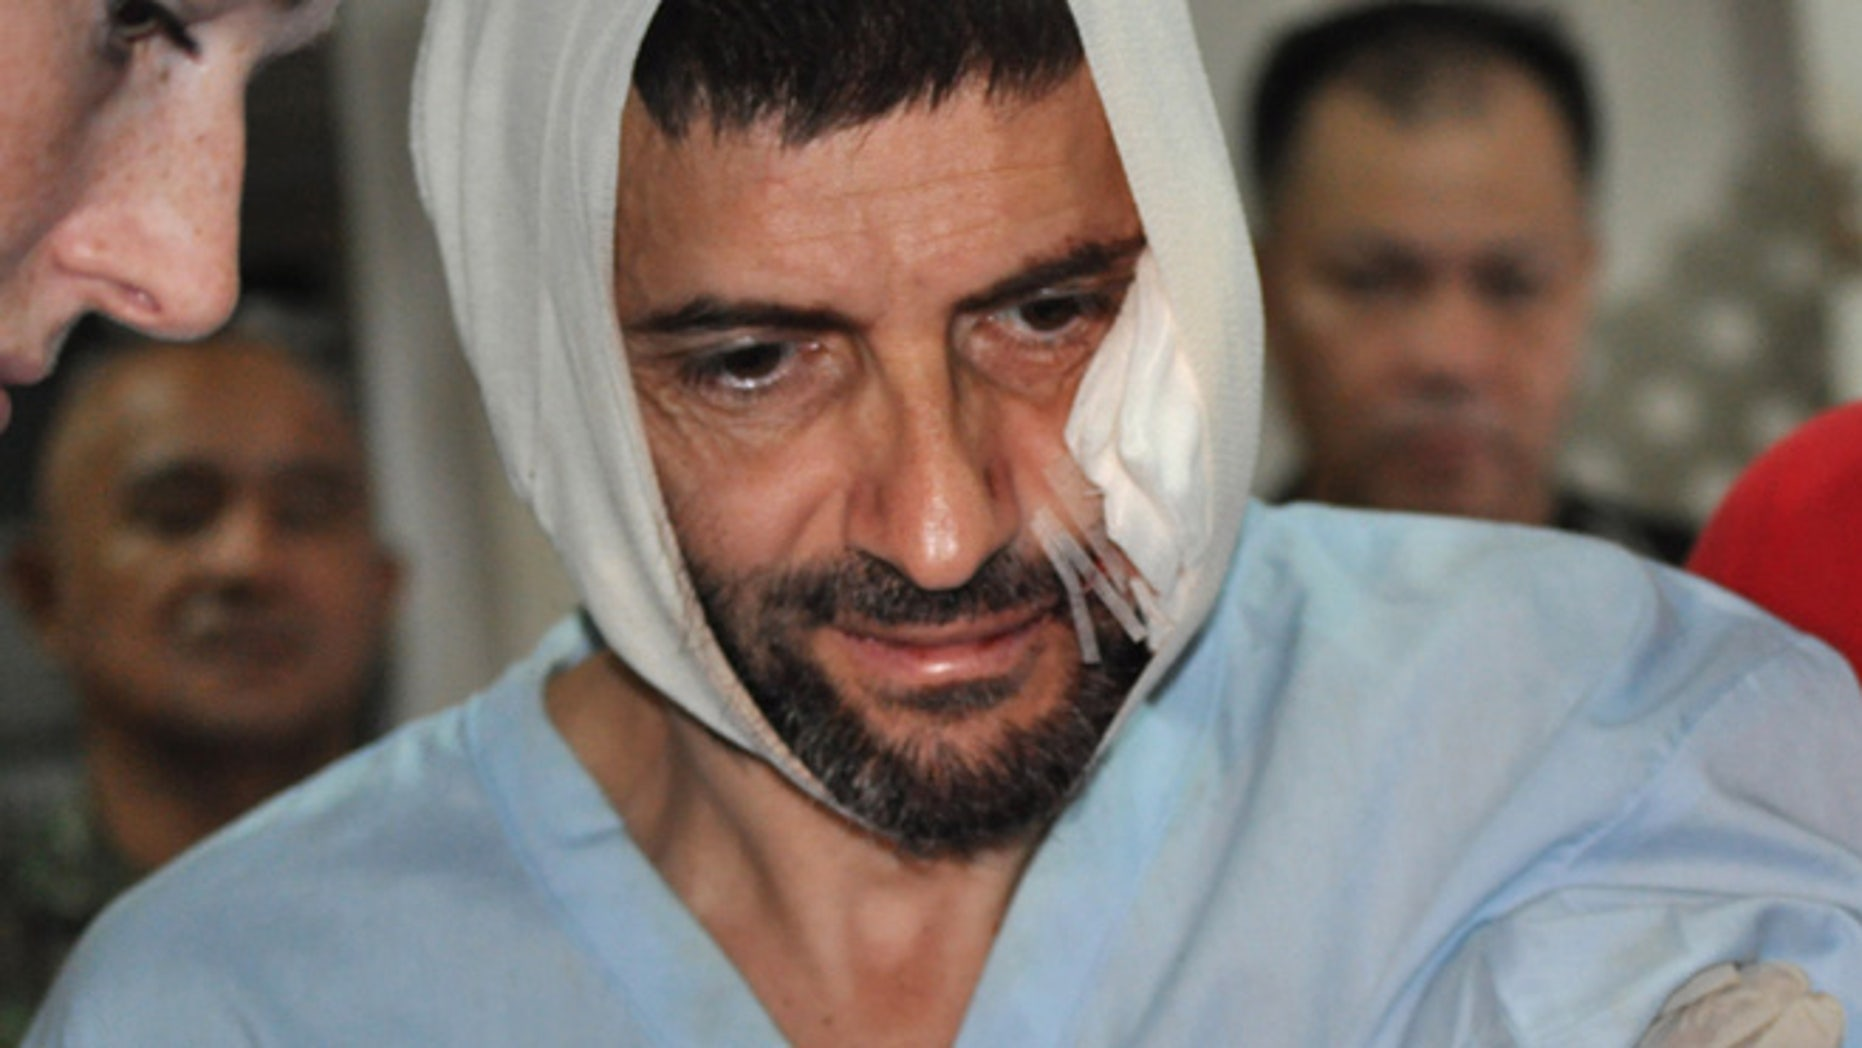 Dec. 6: Swiss hostage Lorenzo Vinciguerra, is treated in a hospital following his daring escape from the hands of the Muslim Abu Sayyaf extremists, in Jolo in southern Philippines.